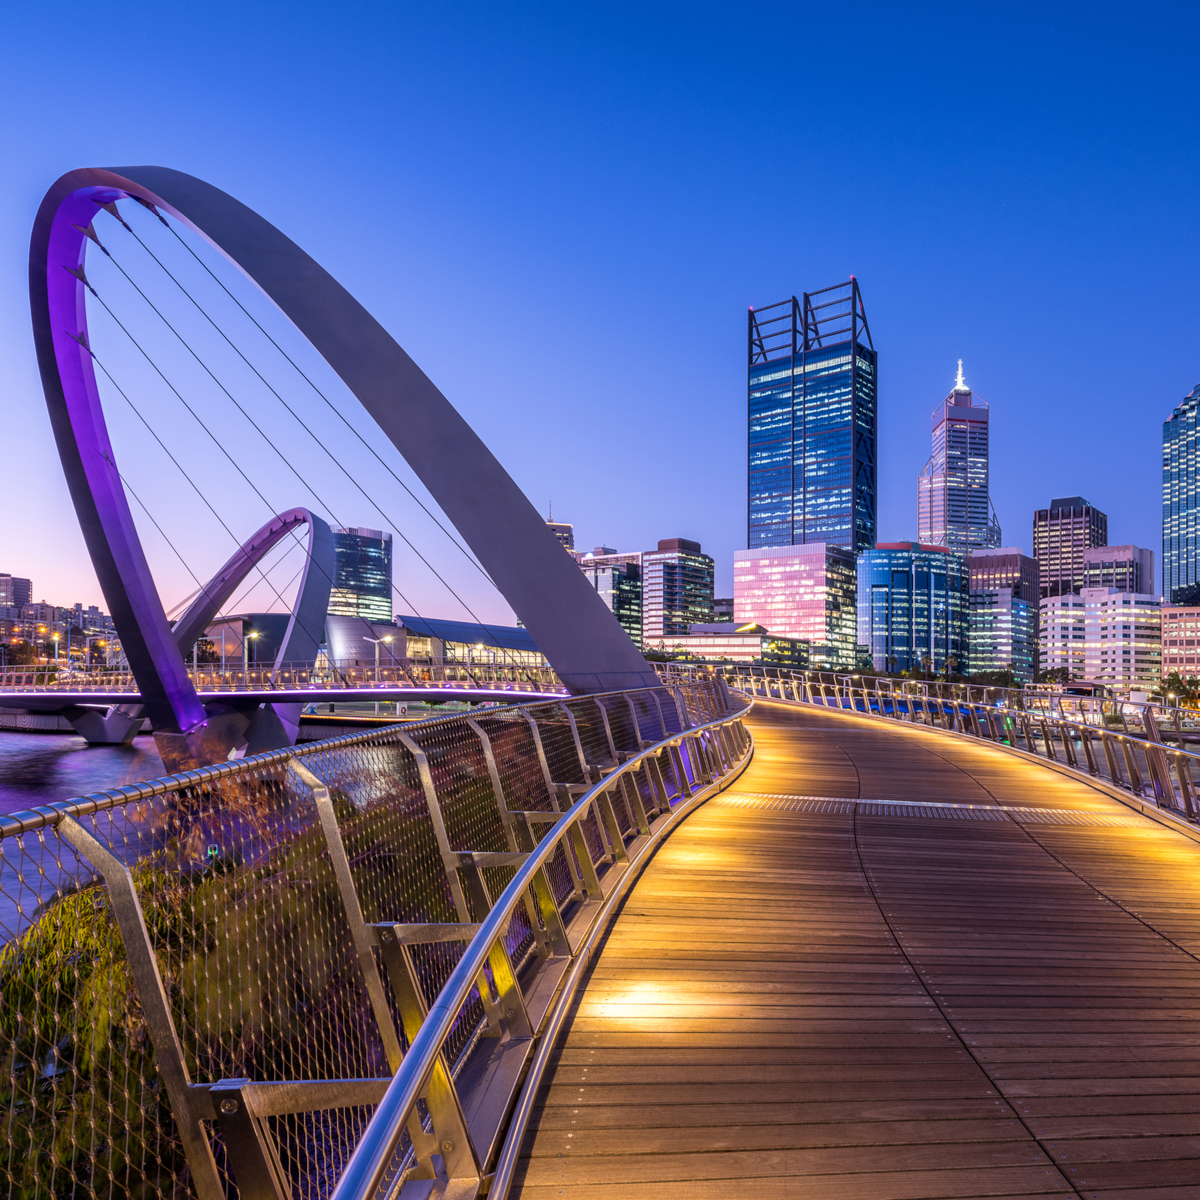 Elizabeth Quay bridge in Perth, Australia.